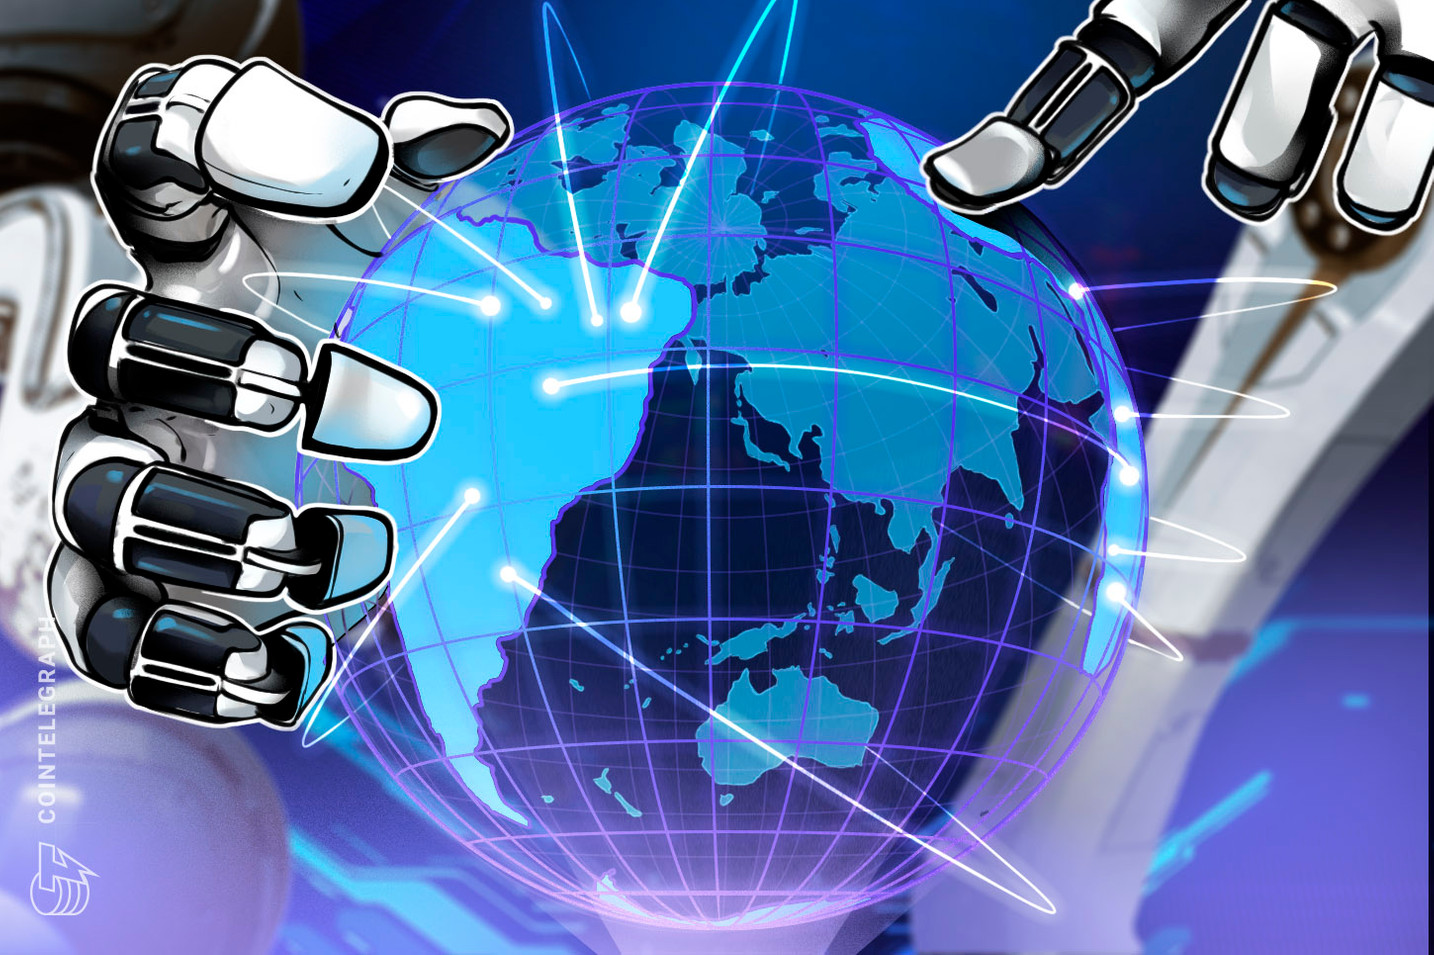 Citi and IADB complete cross-border payment pilot with blockchain tech